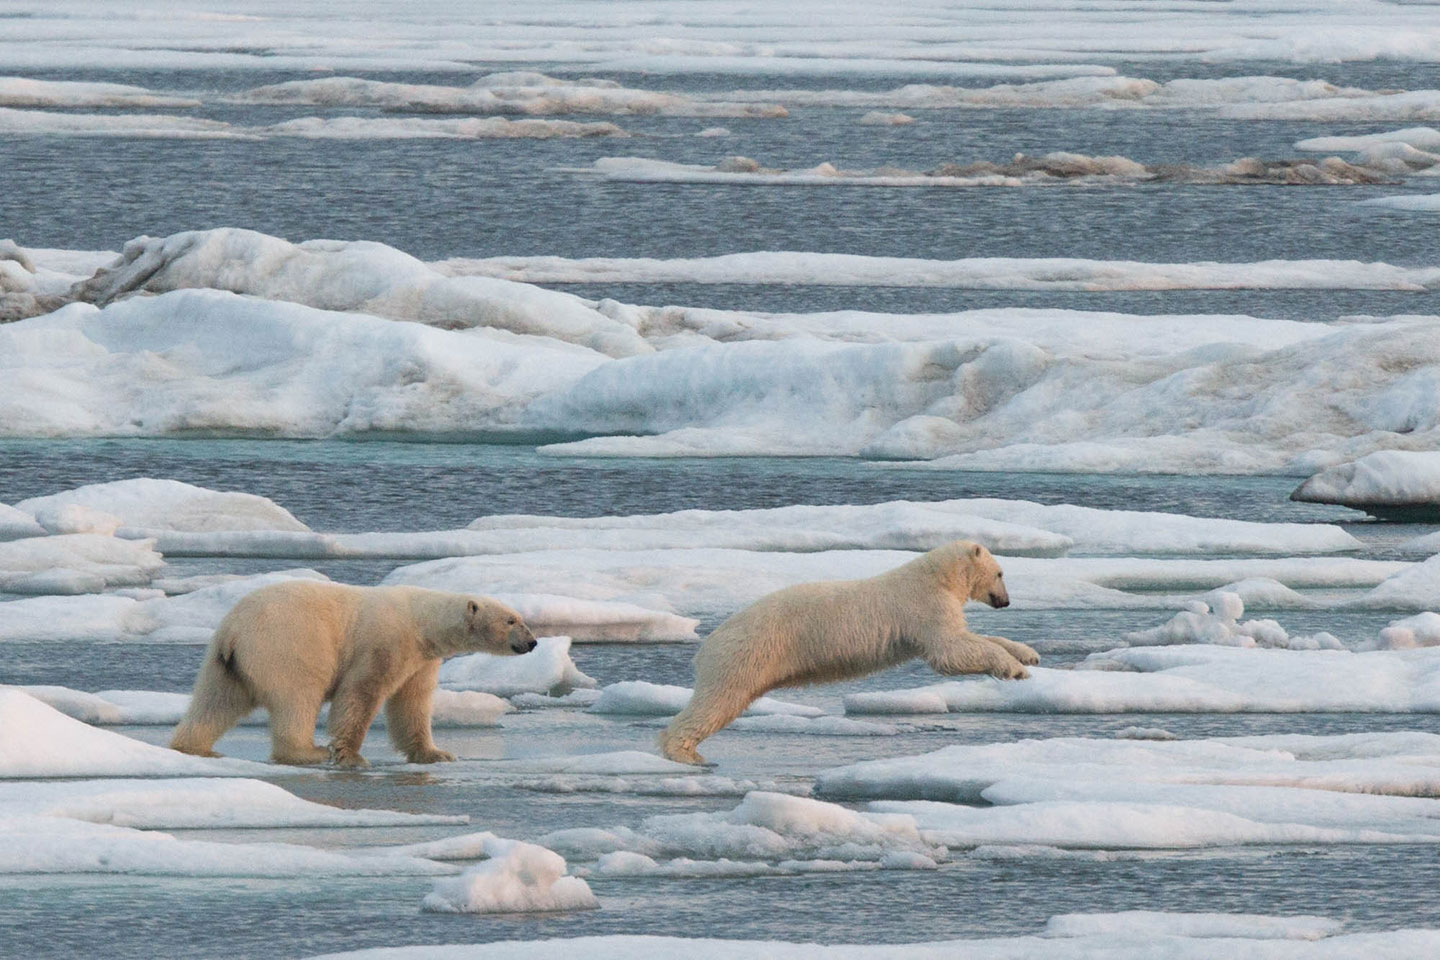 Polar bears are the major attraction for nature lovers to the Arctic